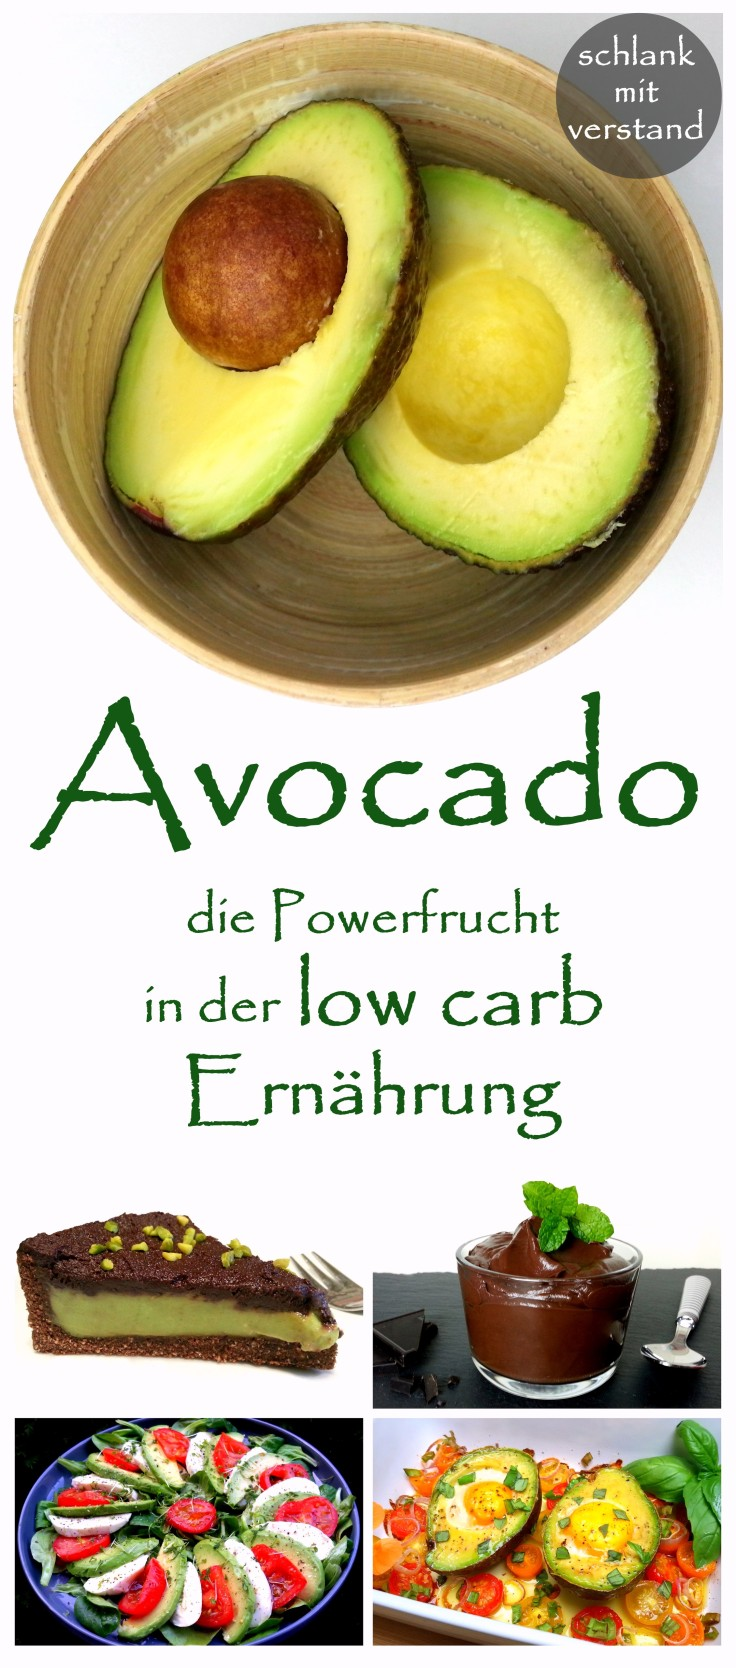 Avocado Powerfrucht low carb